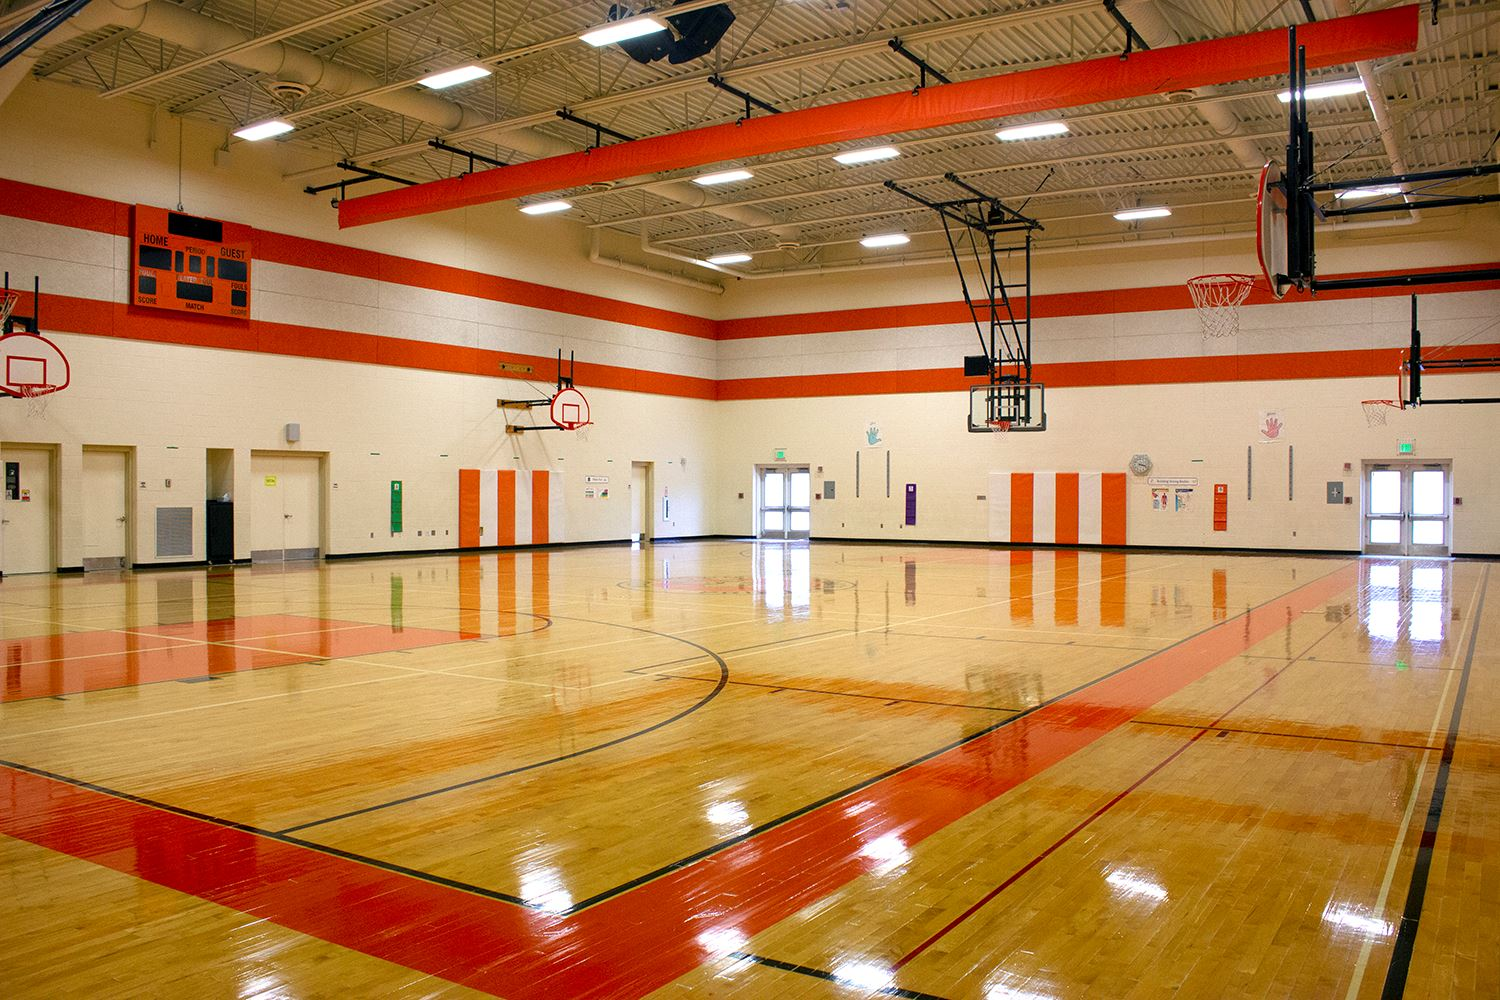 Middletown Rec Center - Gymnasium